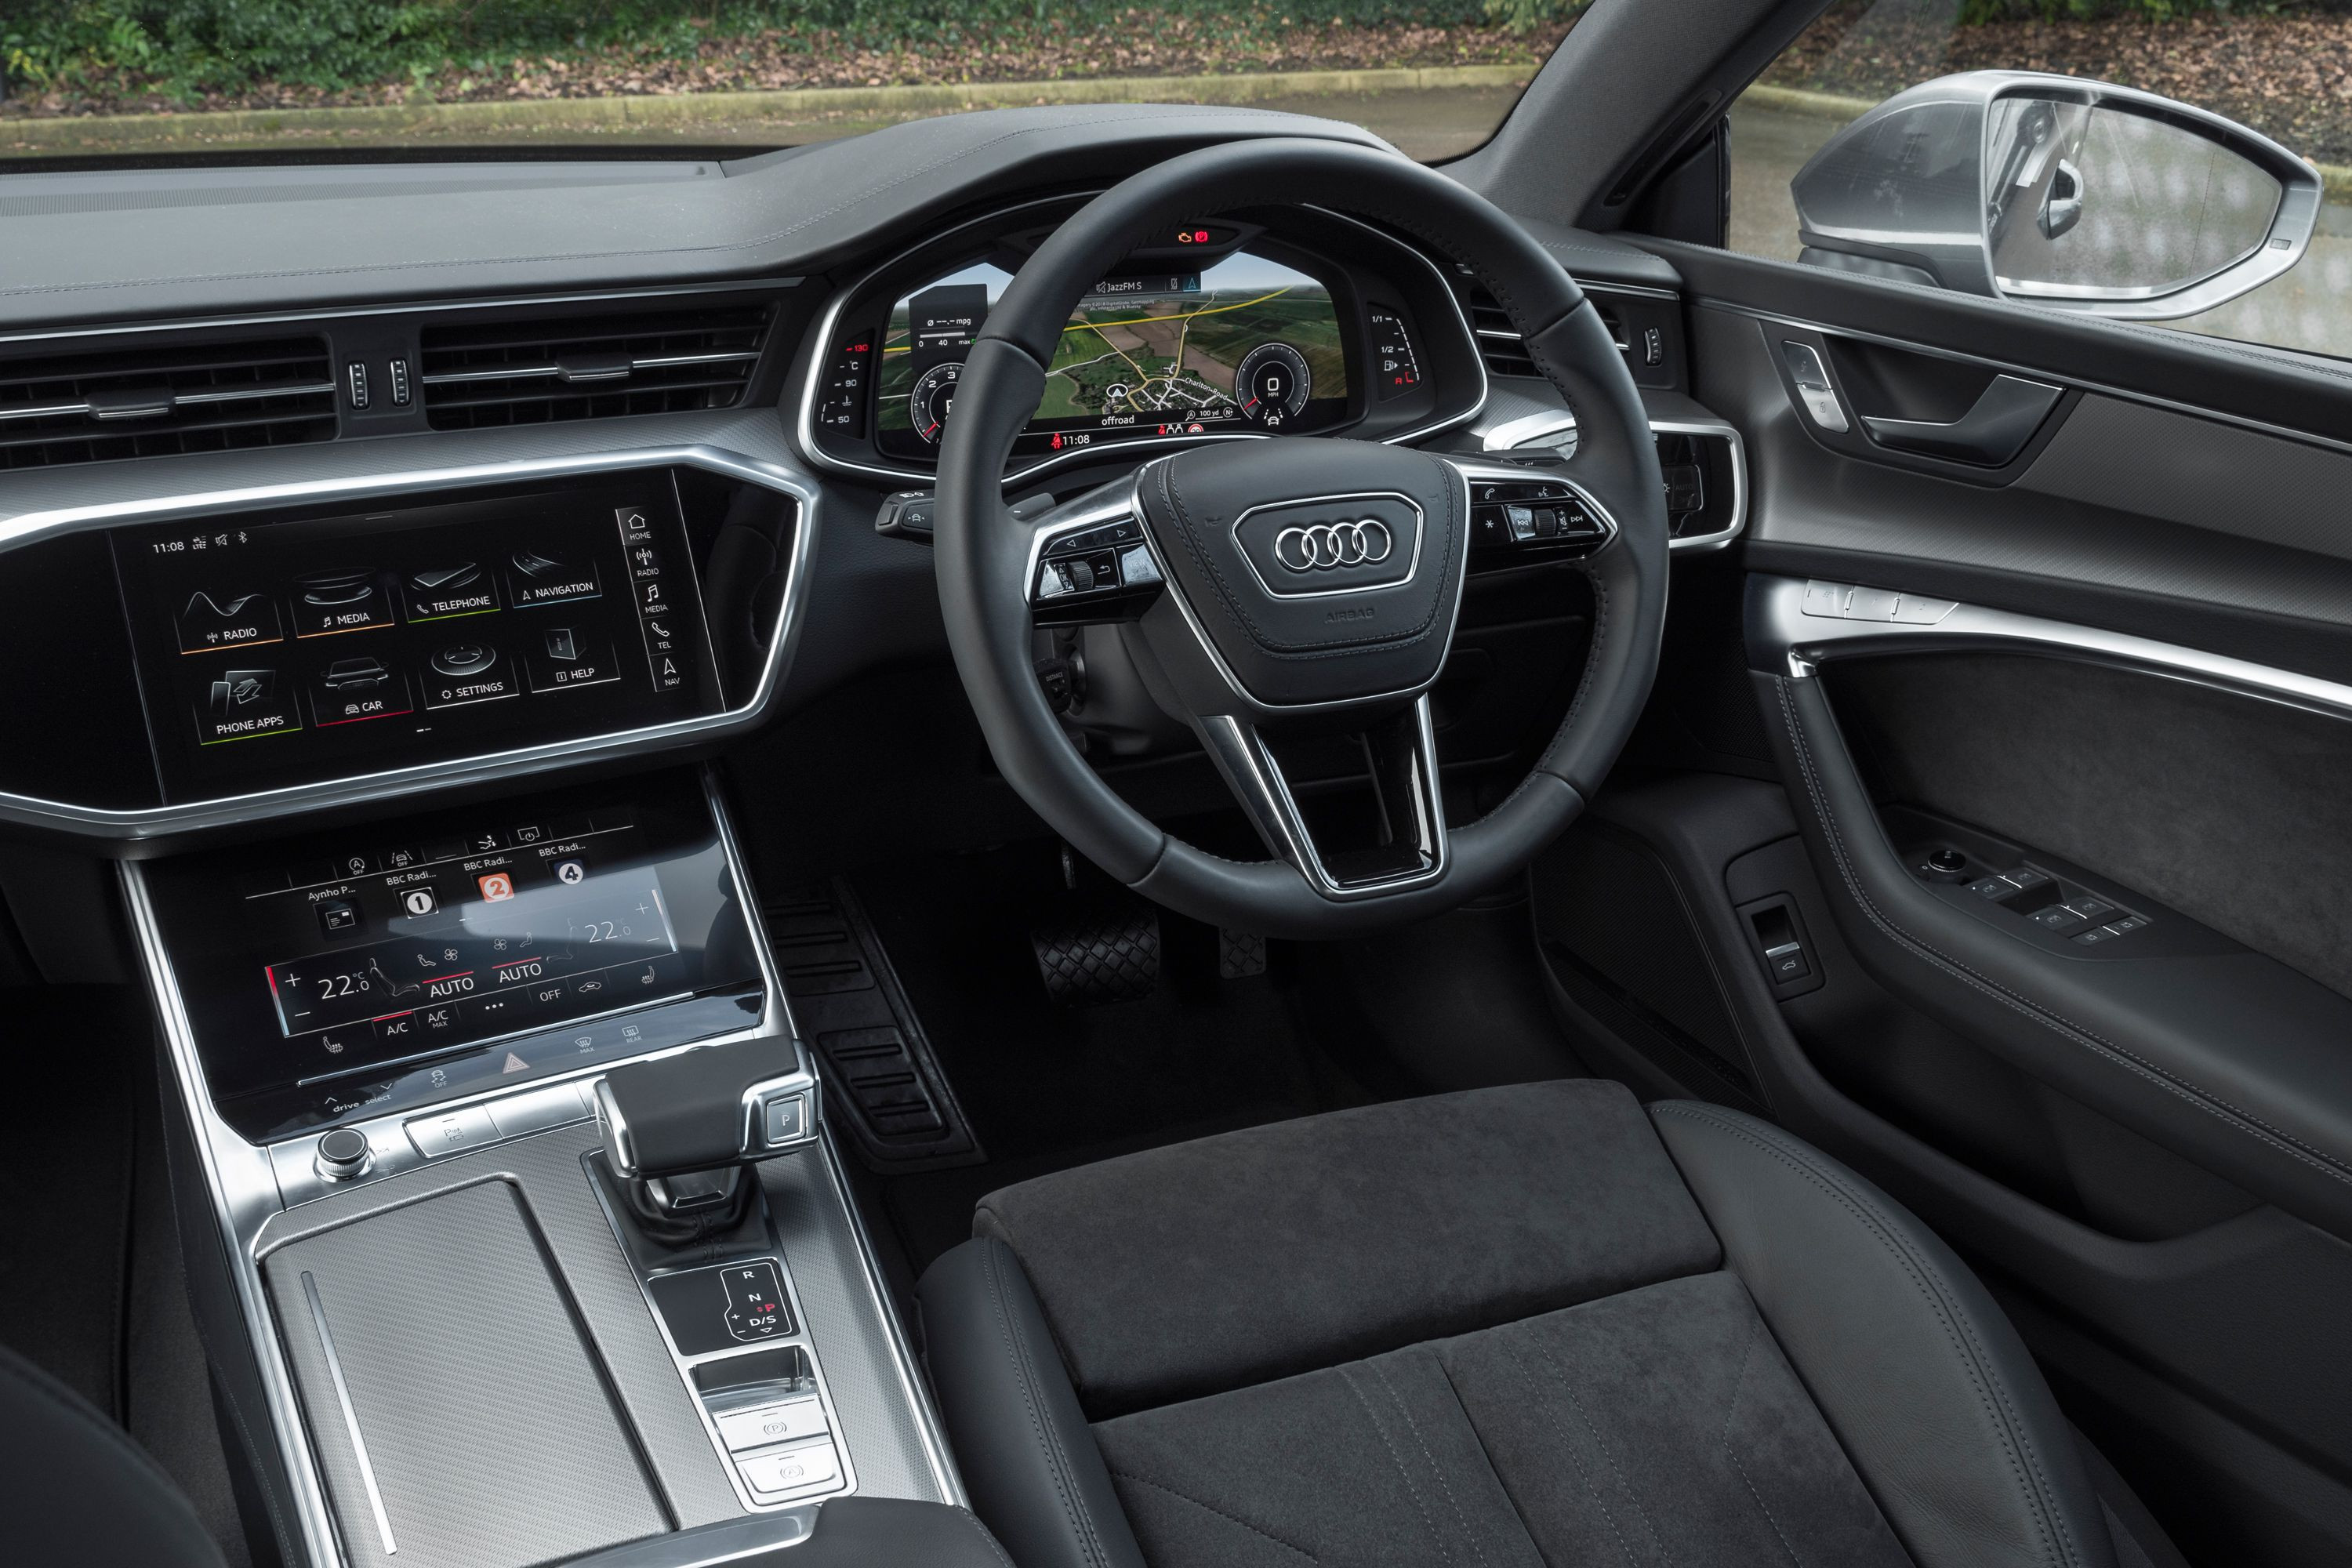 Black leather passenger seat interior space of an Audi A7